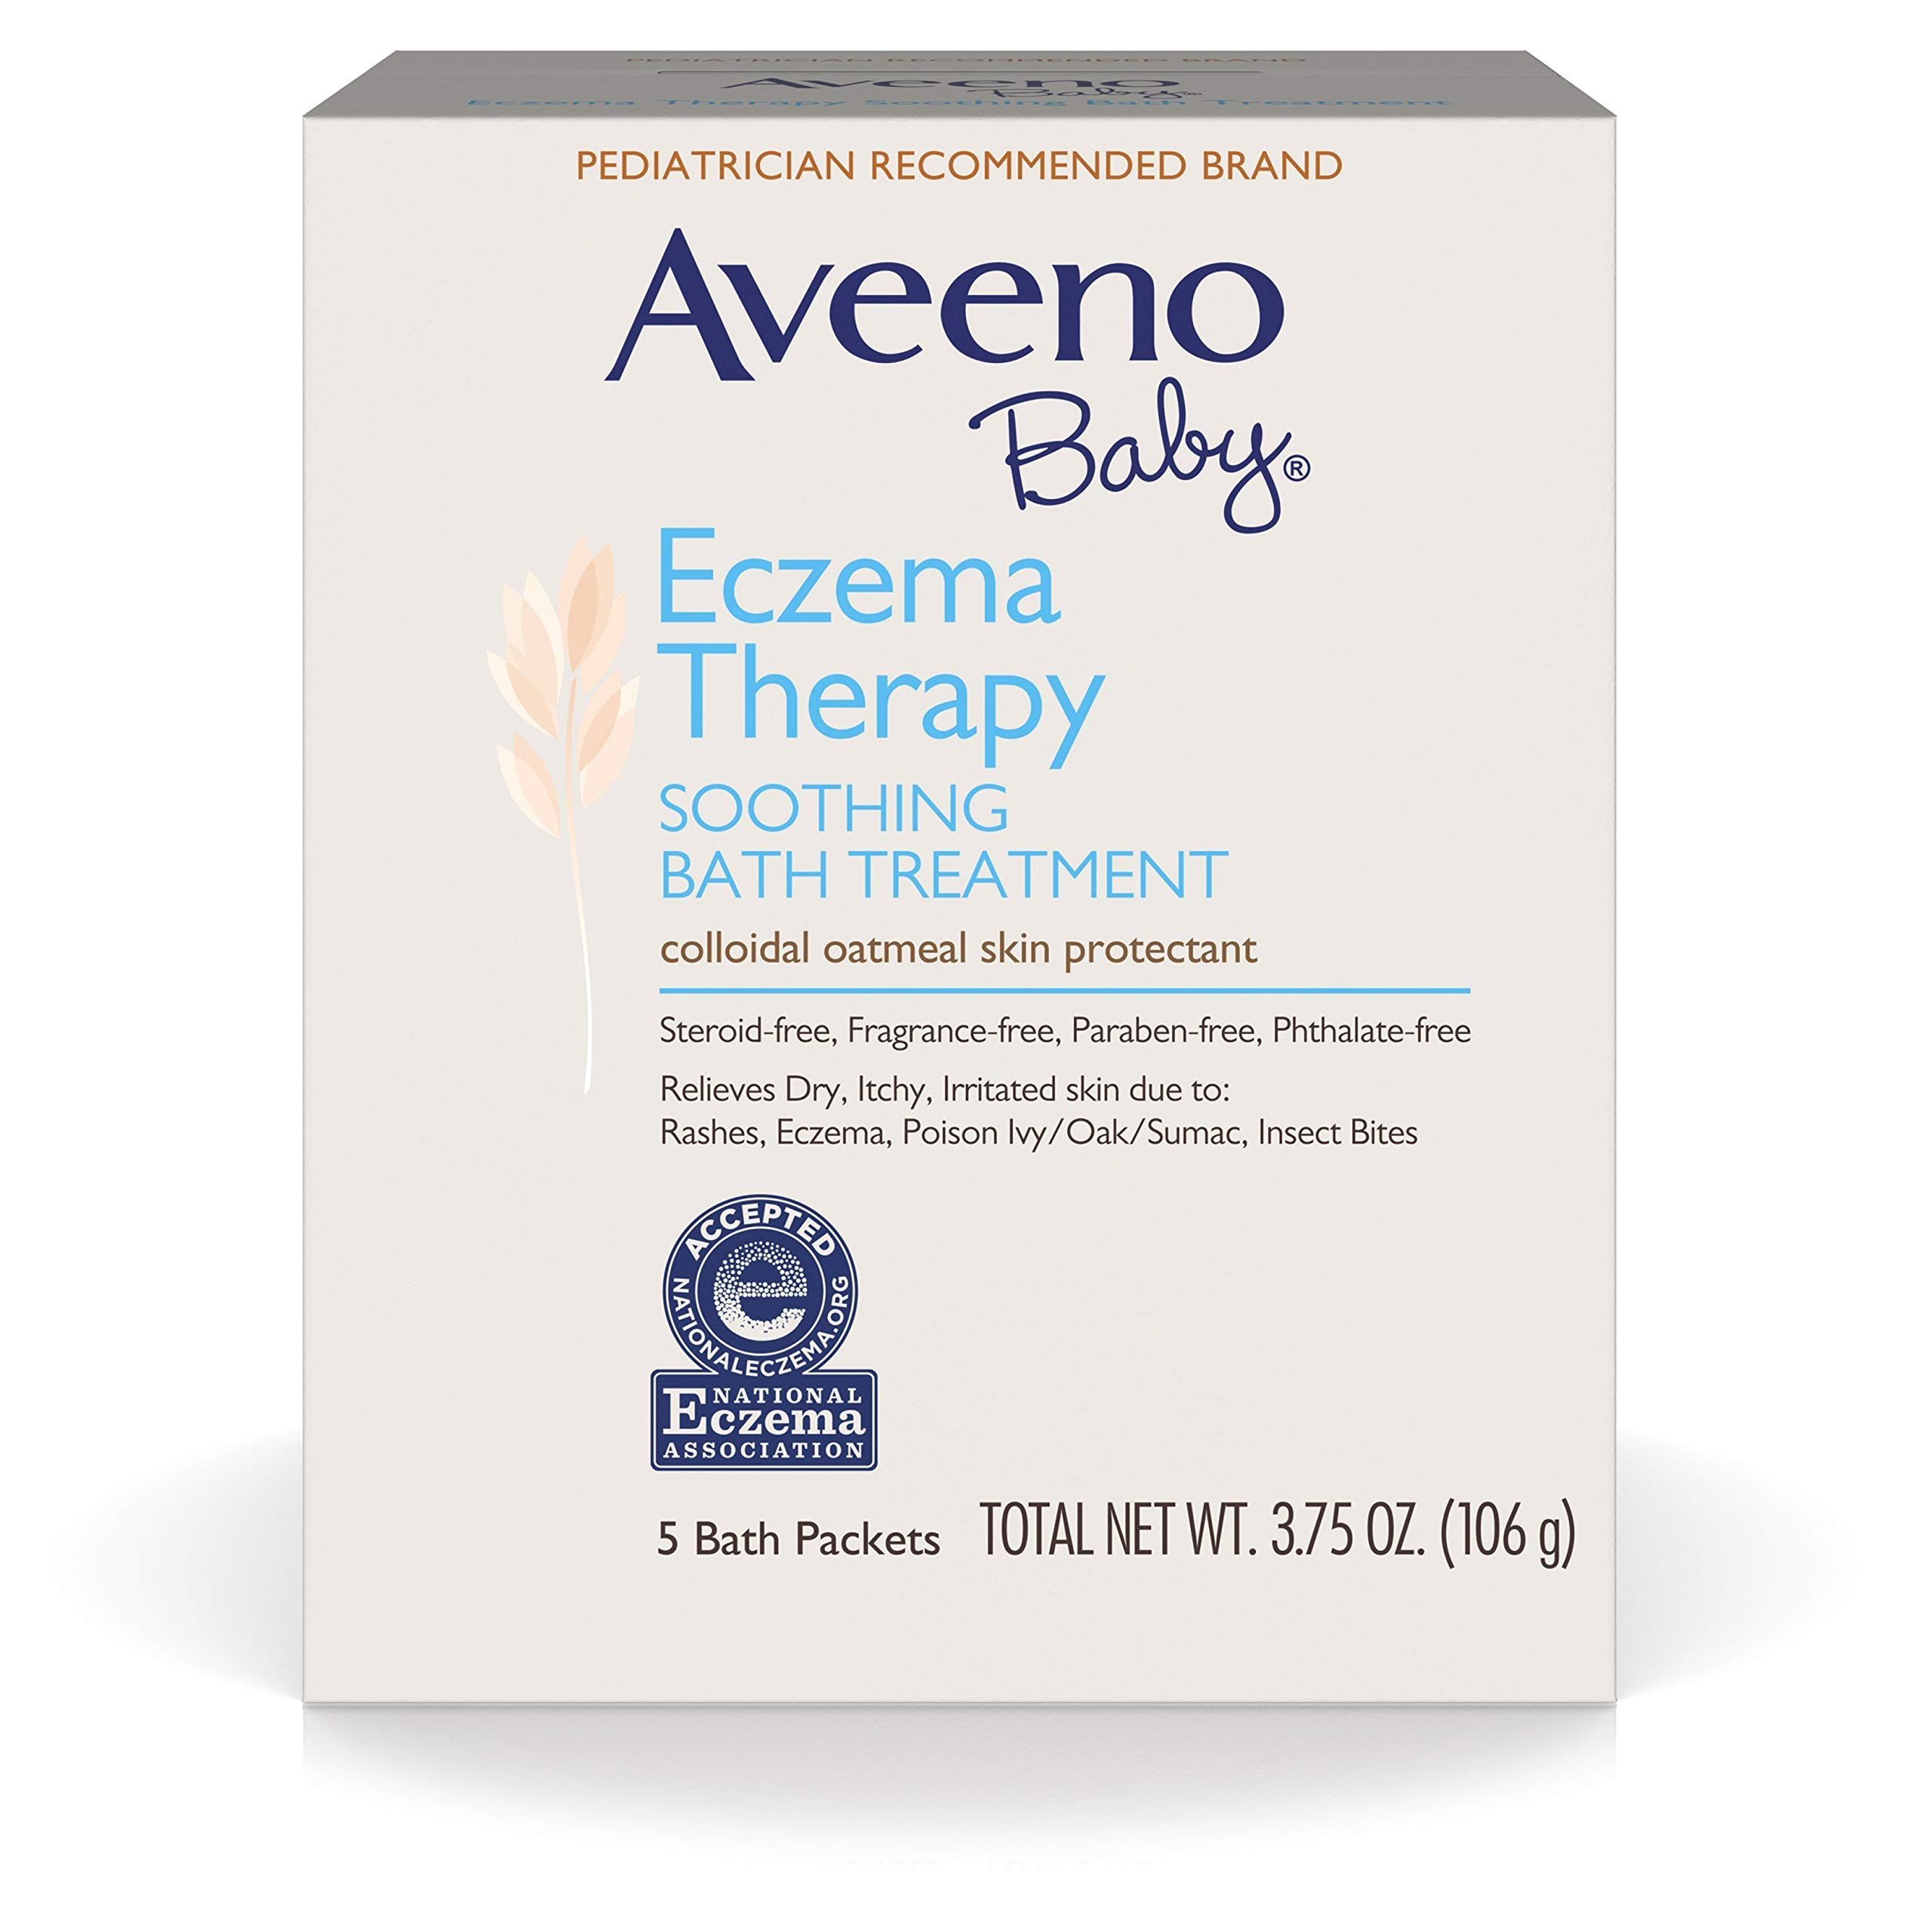 Aveeno Baby Eczema Therapy Soothing Bath Treatment with Soothing Natural Colloidal Oatmeal, 5 Count (Pack of 2)